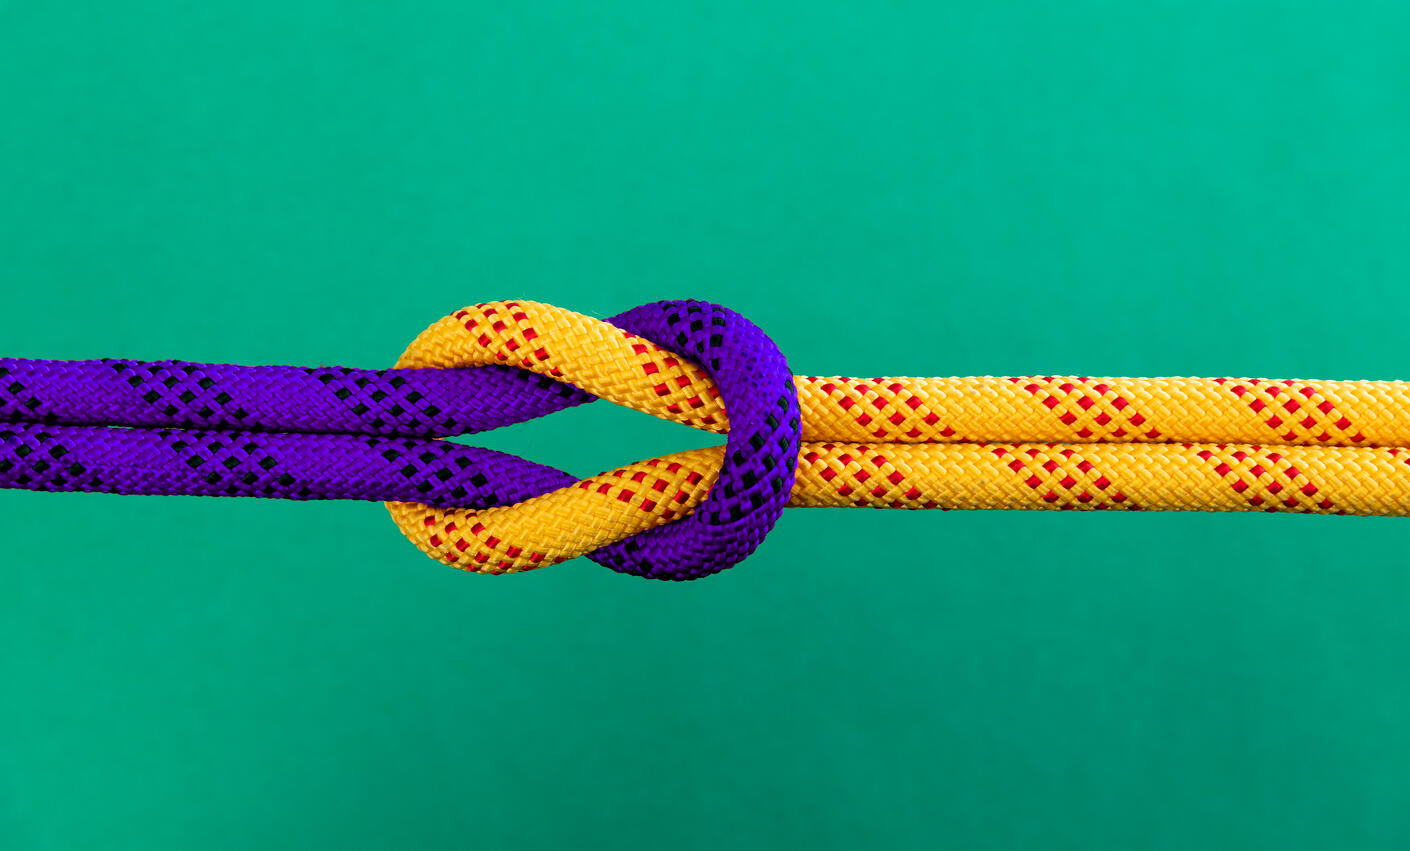 Reef knot on green background_purple-yellow